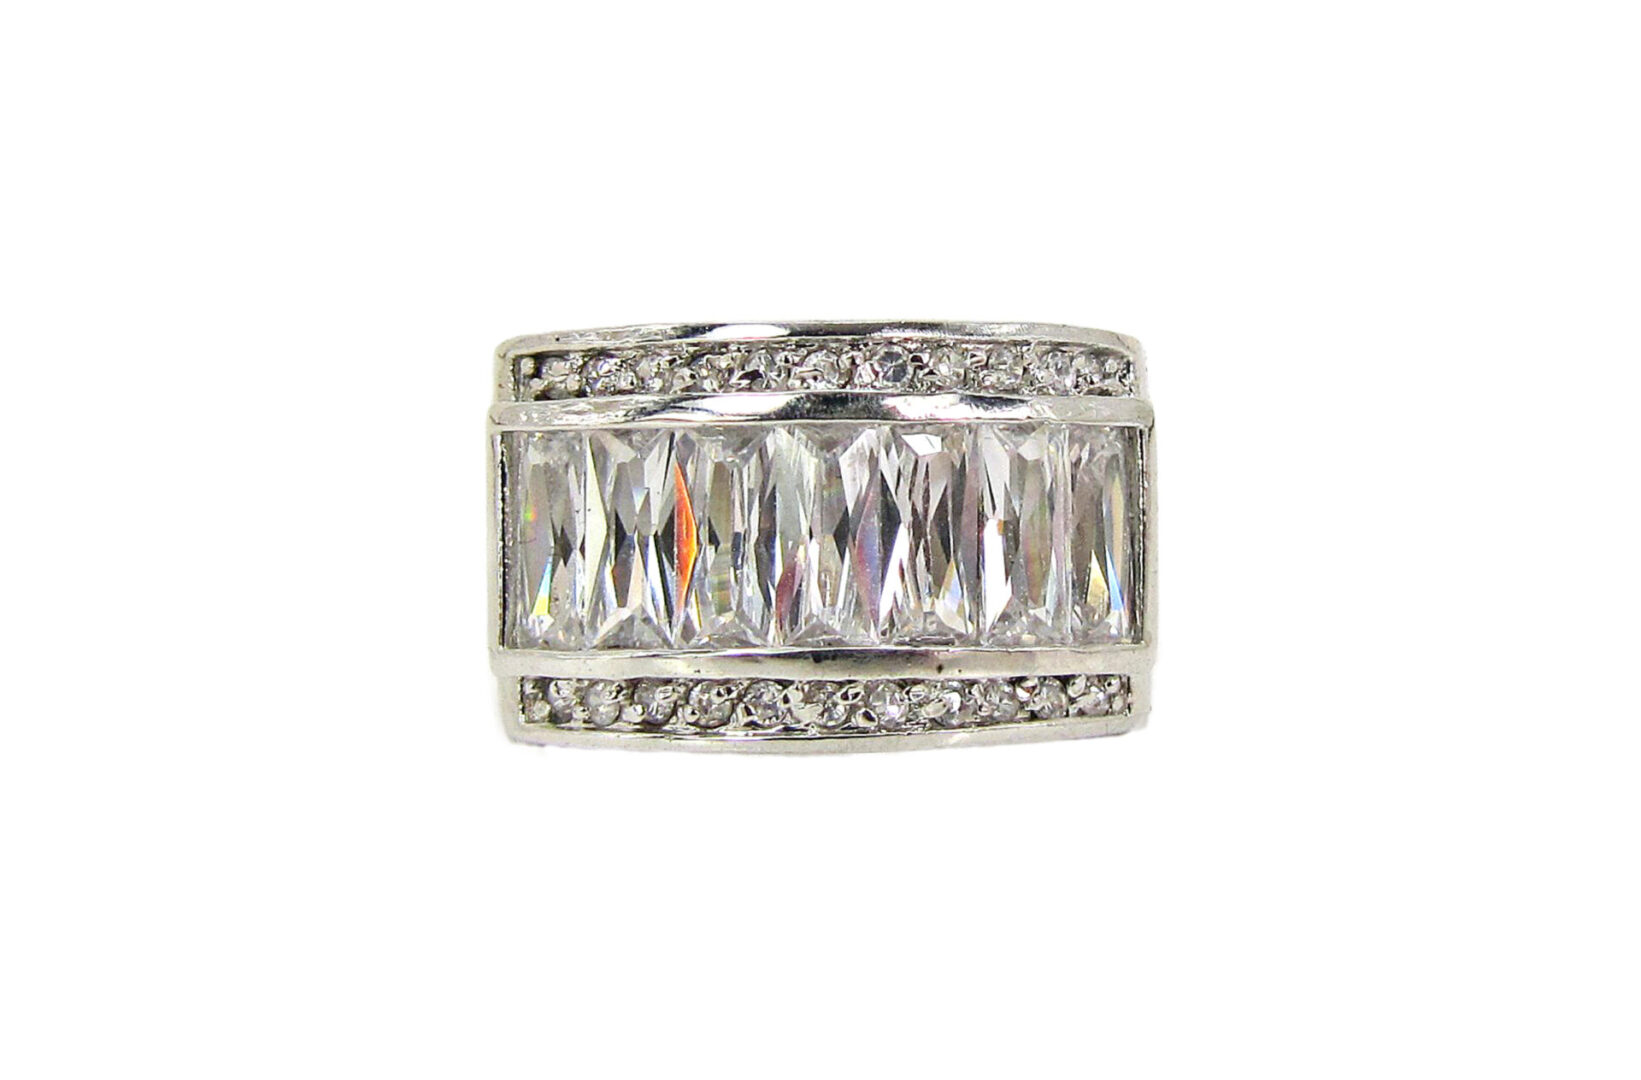 ring with rows of white rectangular crystals